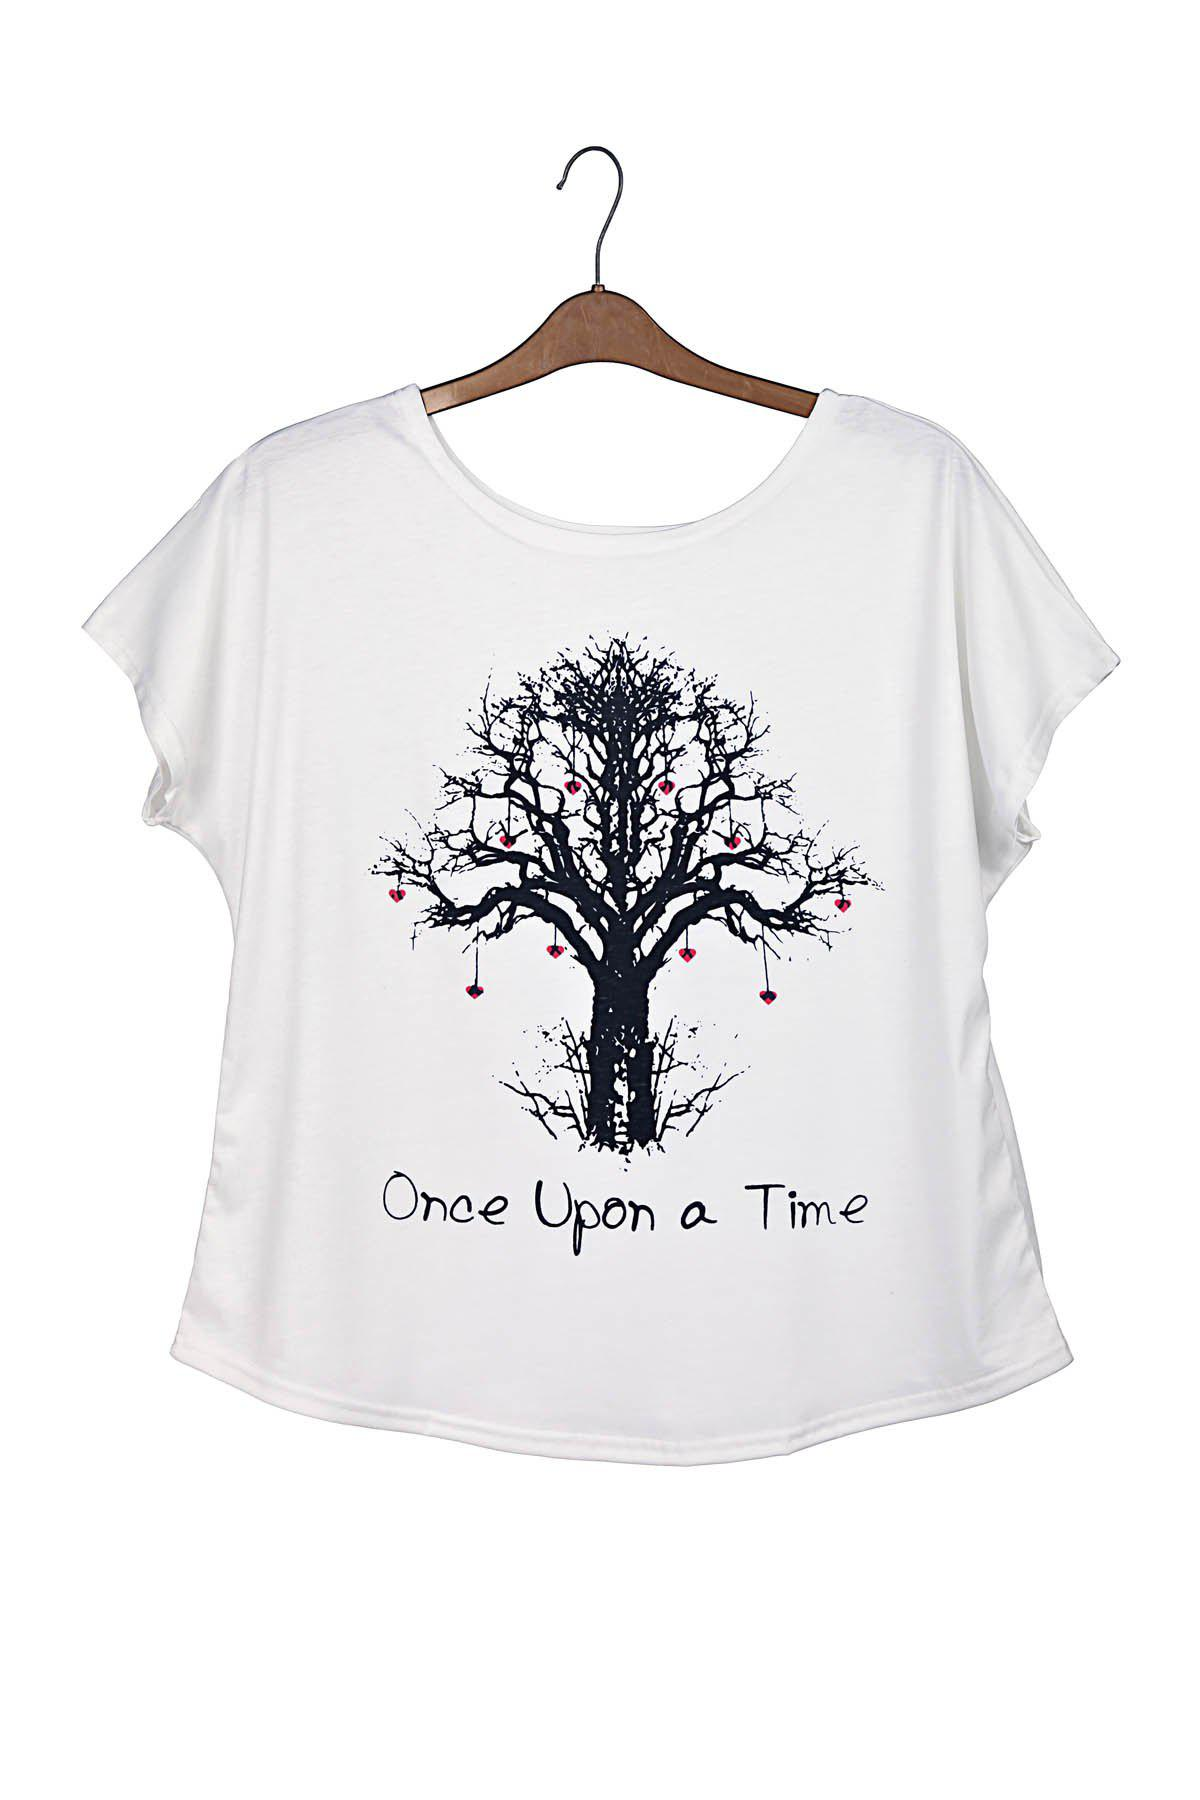 Wishing Tree Print Sweet Scoop Neck Batwing Sleeve Casual Women's T-Shirt - ONE SIZE WHITE